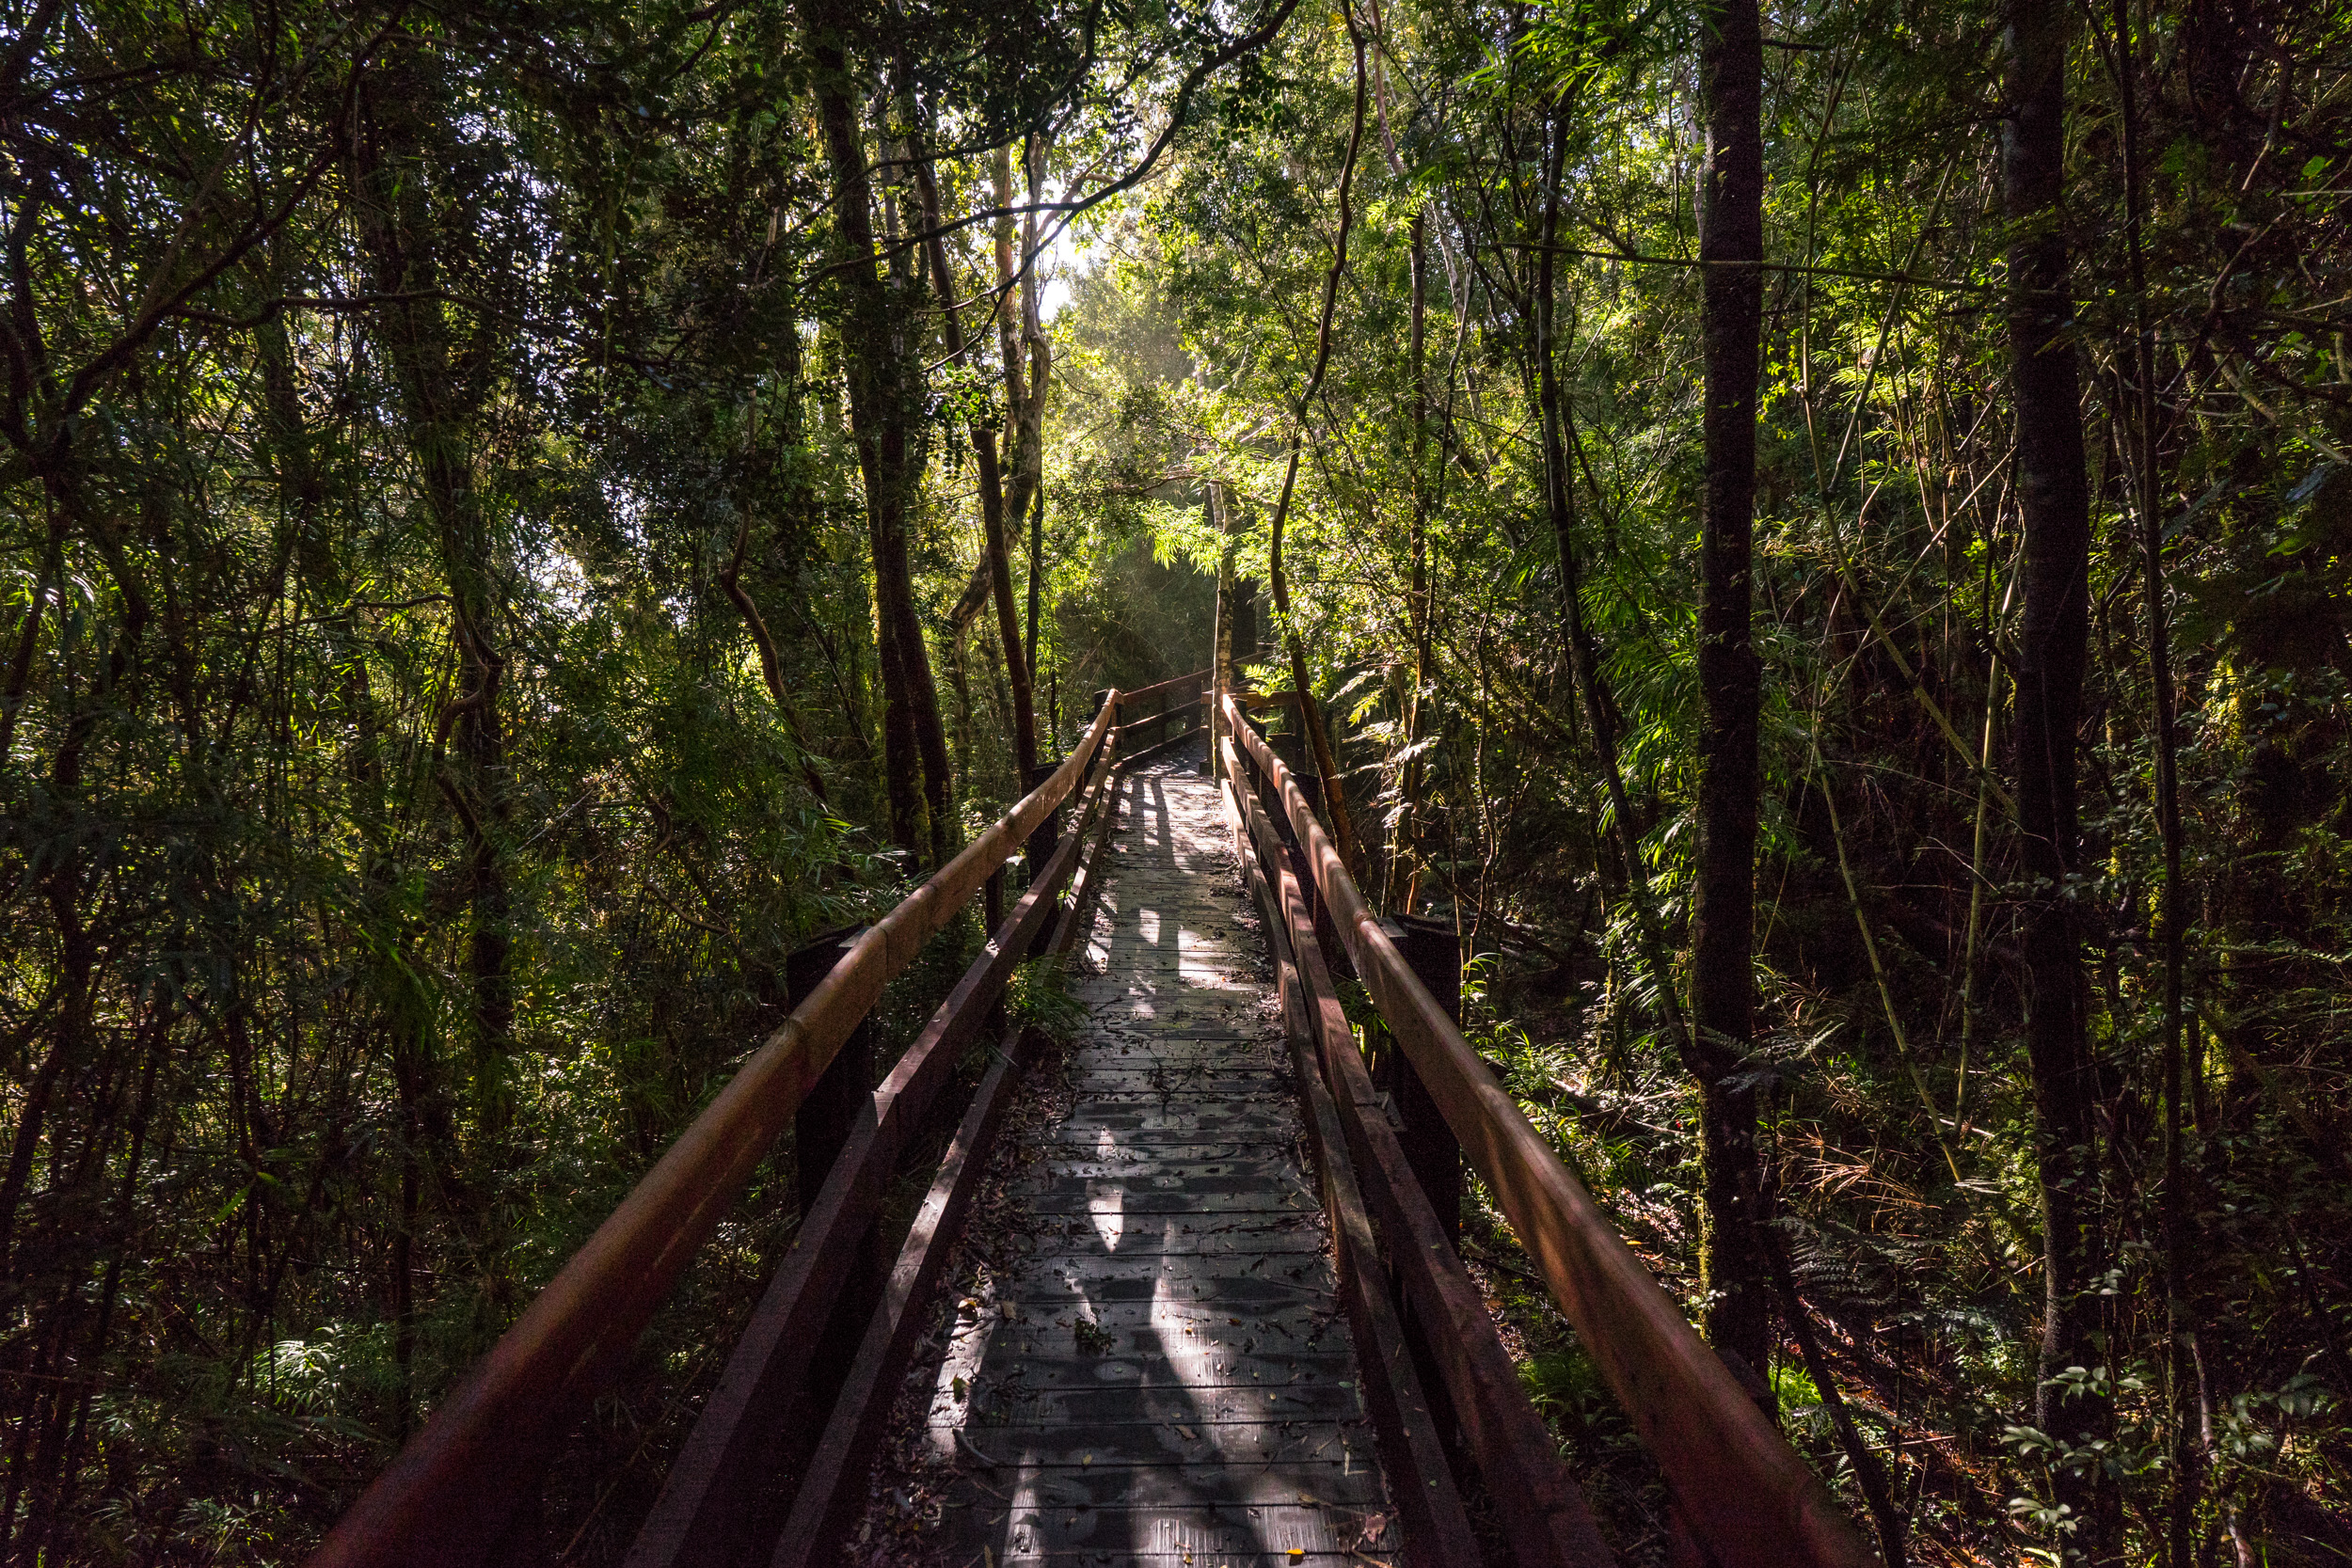 - One of the short hikes, the Colmillos (fangs) of Chaihuín, nearby the Valdivian Costal Reserve offices. It's a walk through the olivillo tree forest down to the beach where two rock formations are known as the